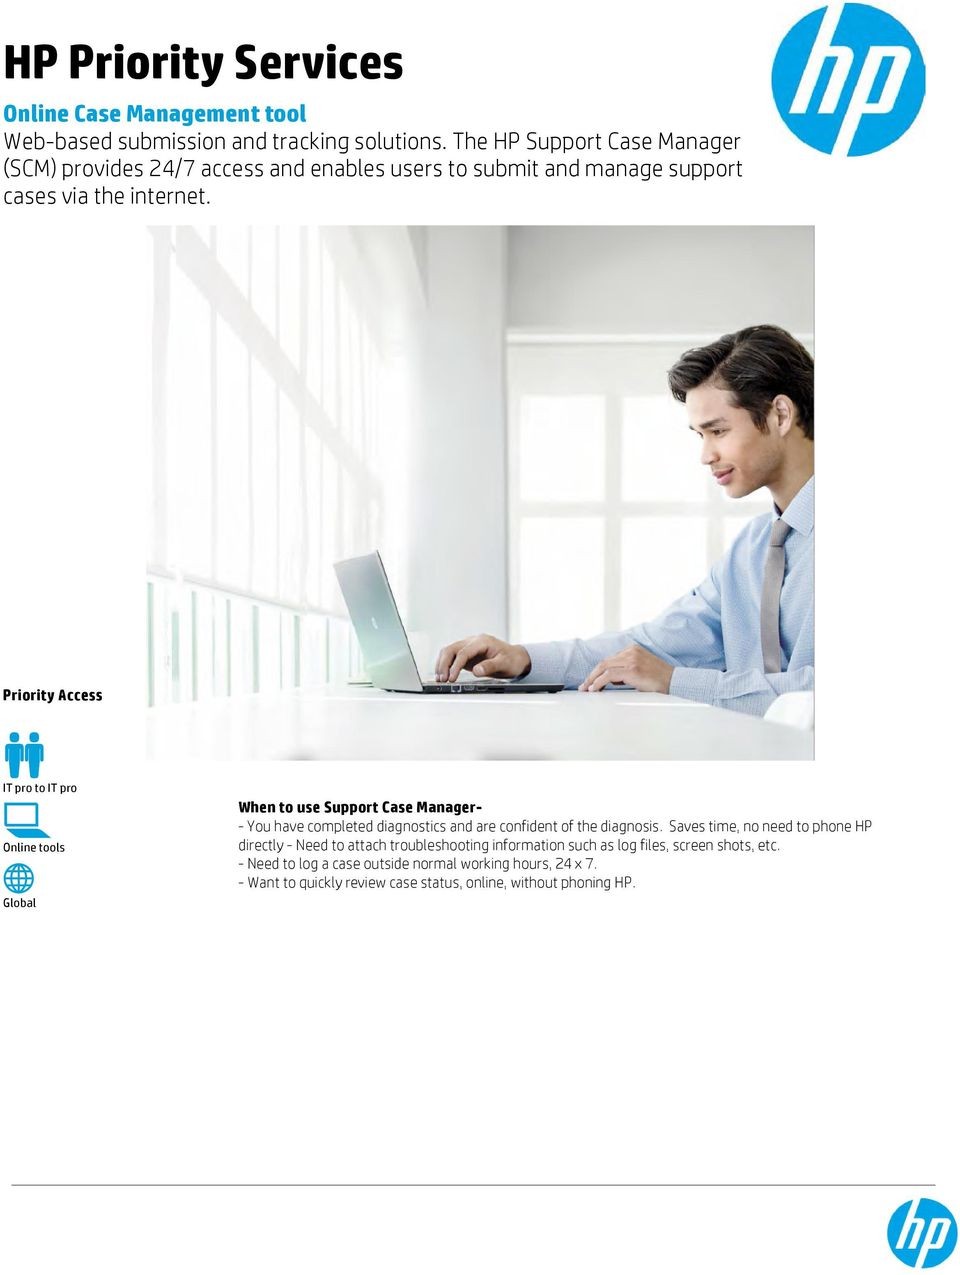 Priority Access IT pro to IT pro Online tools Global When to use Support Case Manager- - You have completed diagnostics and are confident of the diagnosis.